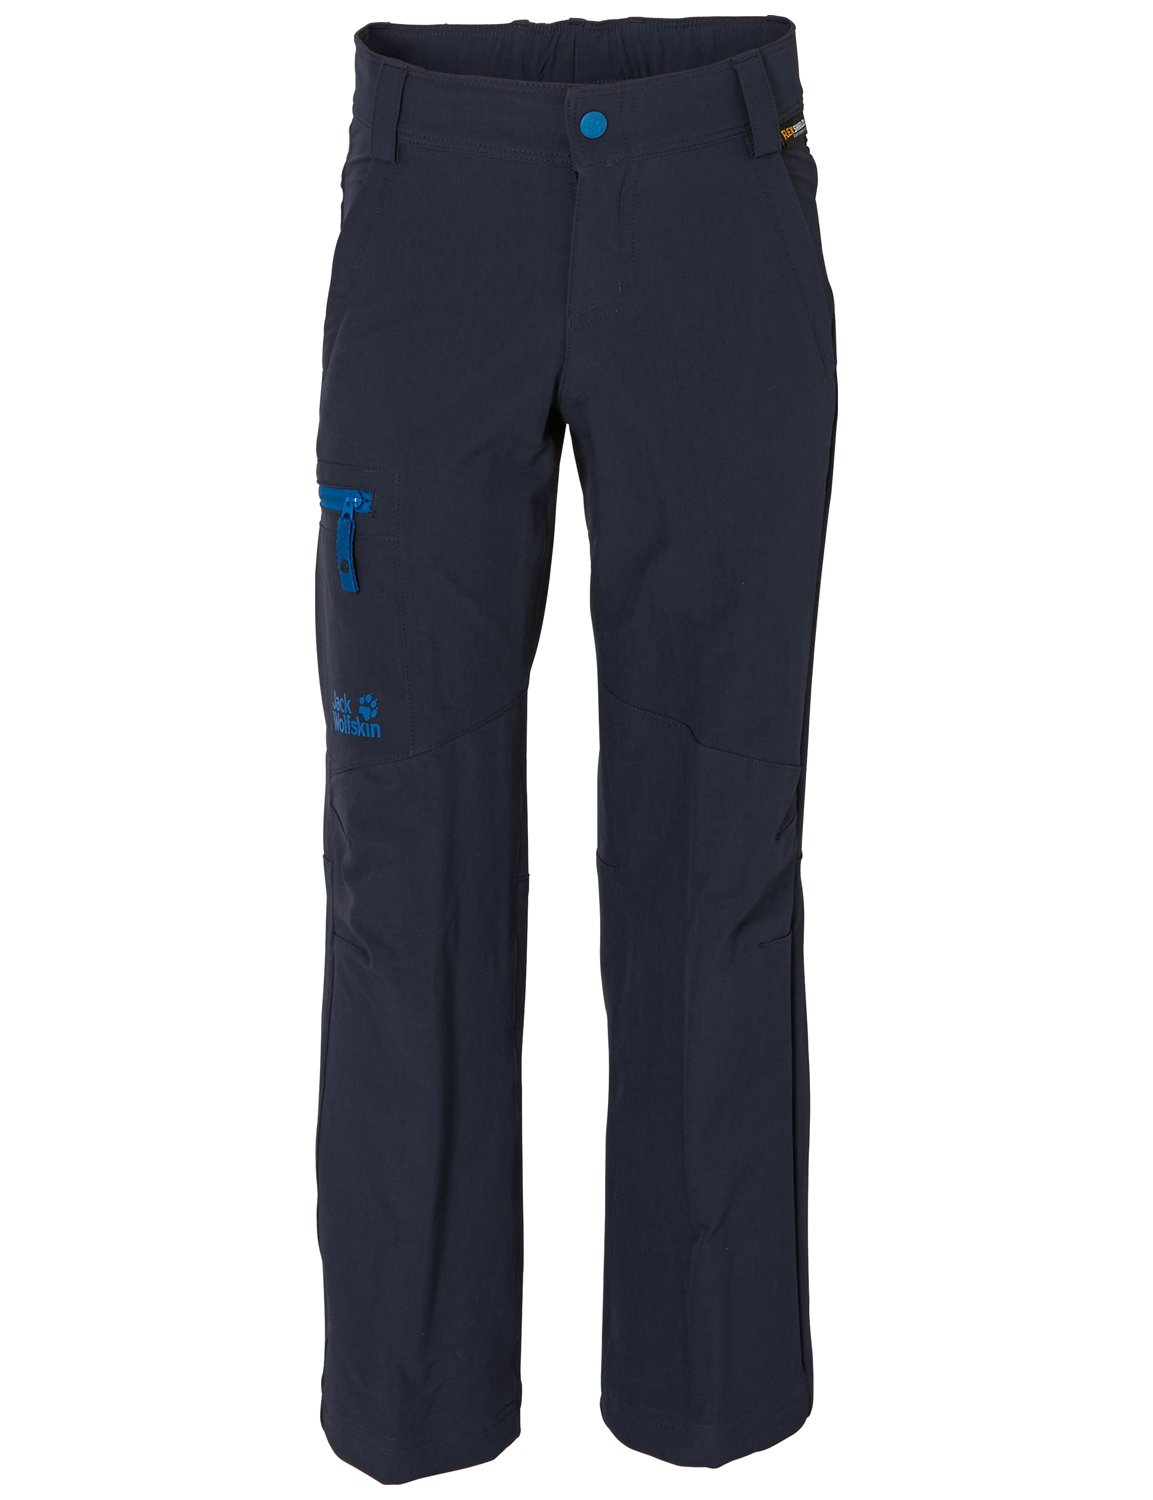 Jack Wolfskin Boy's Activate II Soft Shell Pant, Night Blue, 152